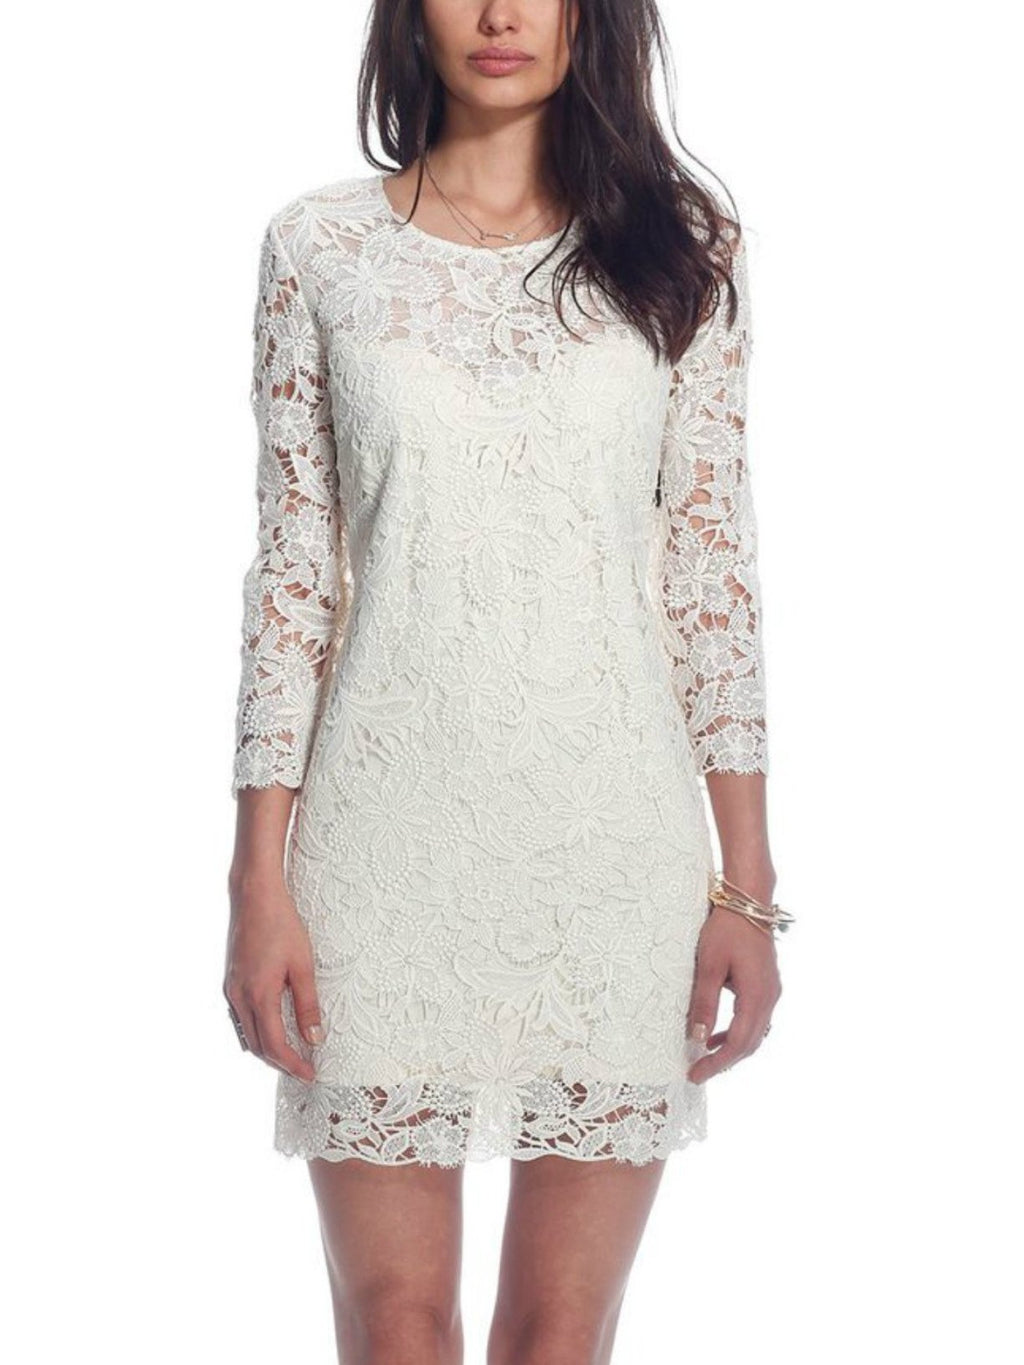 Heartloom Marlene Lace Mini Dress